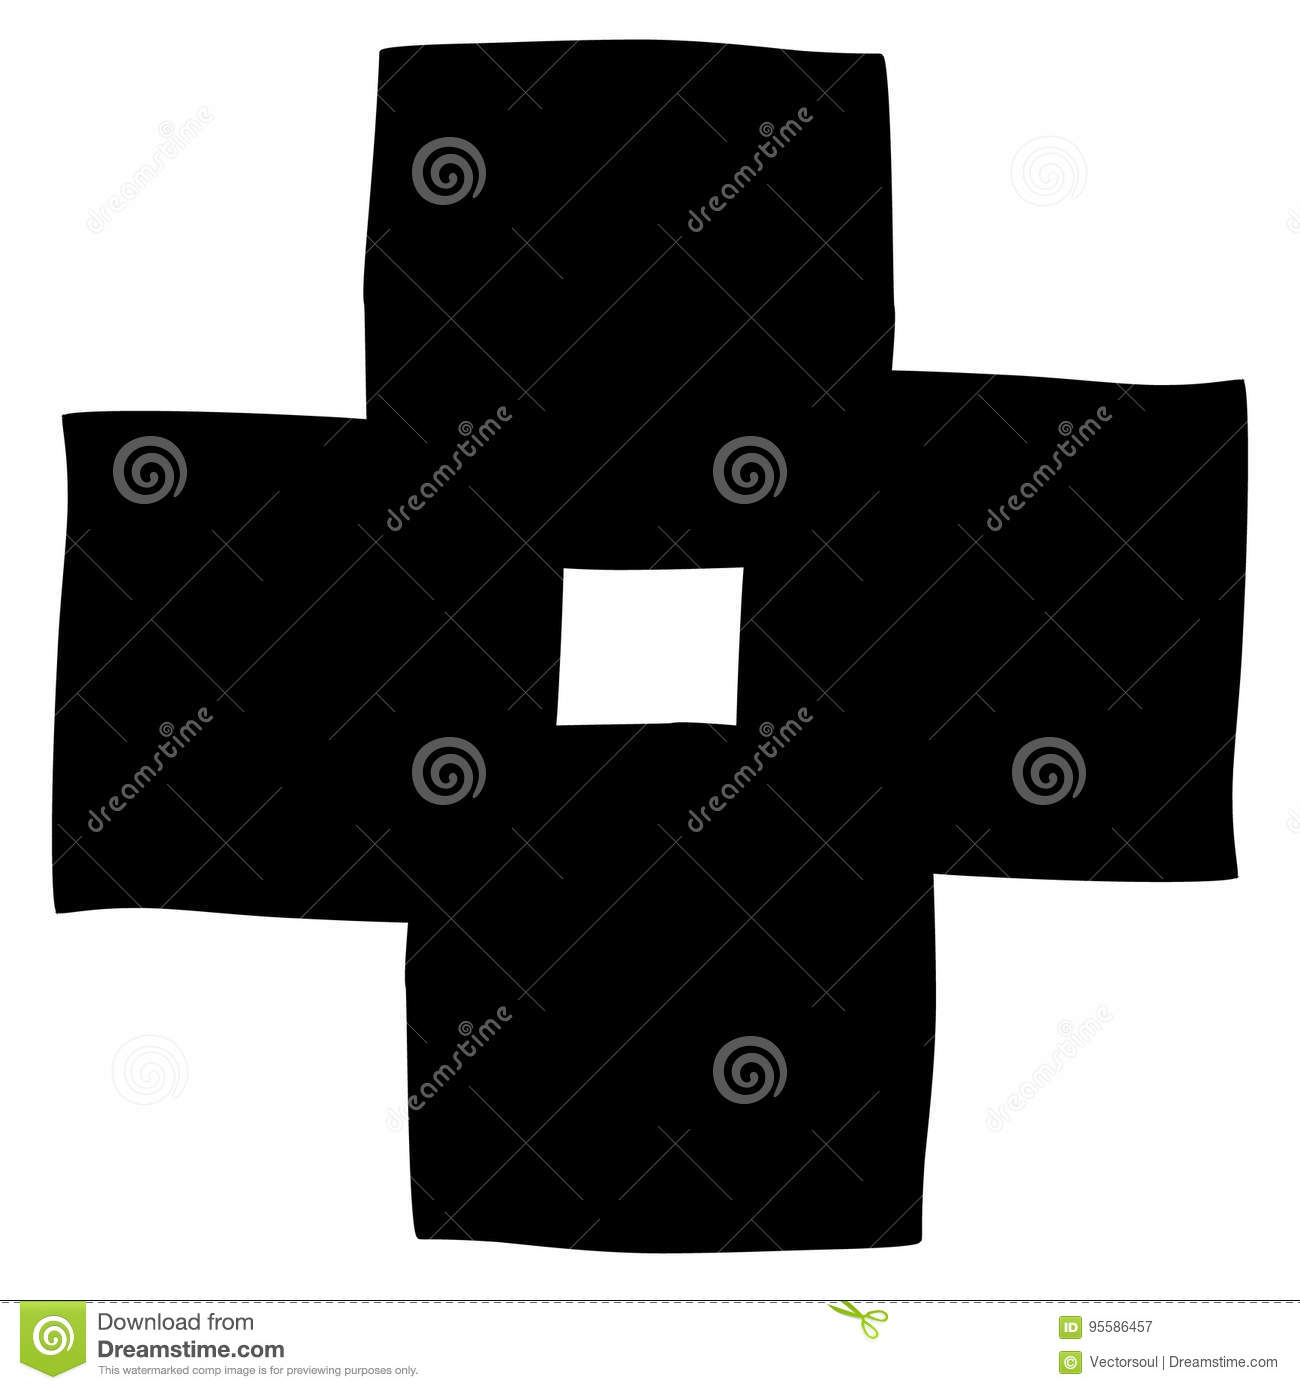 Overlapping basic shapes abstract element with slight distortion